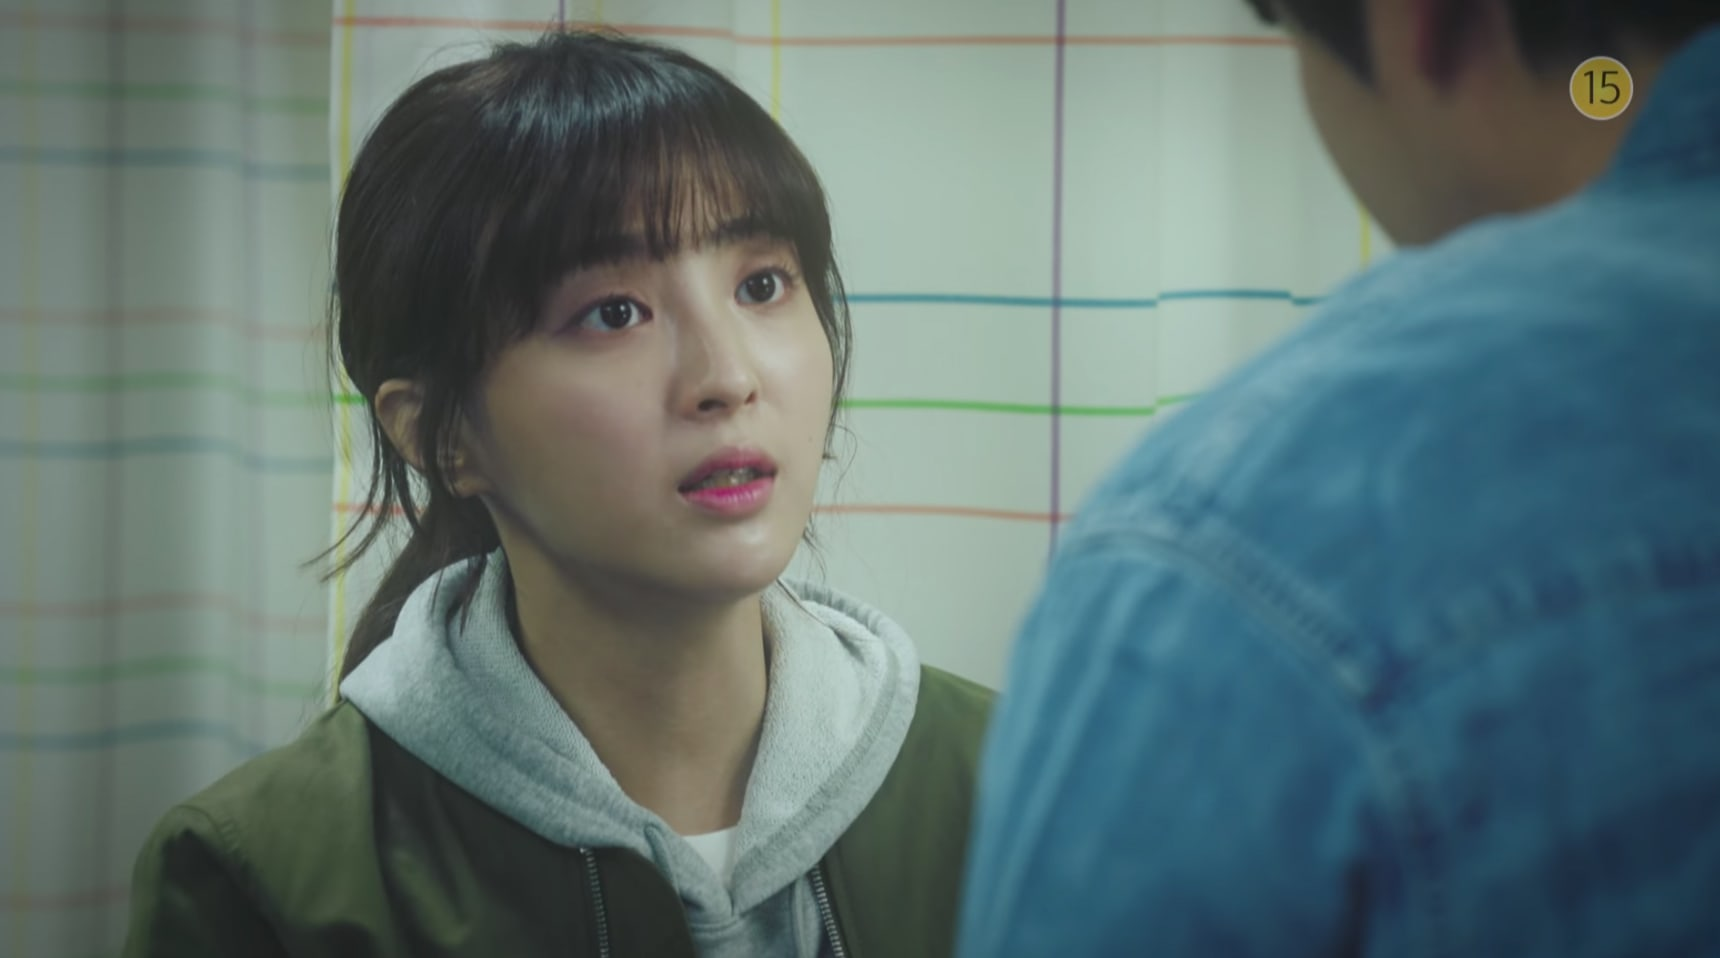 Jung Hye Sung Reveals Her Affection For Her Character In New Drama With Yoon Kyun Sang